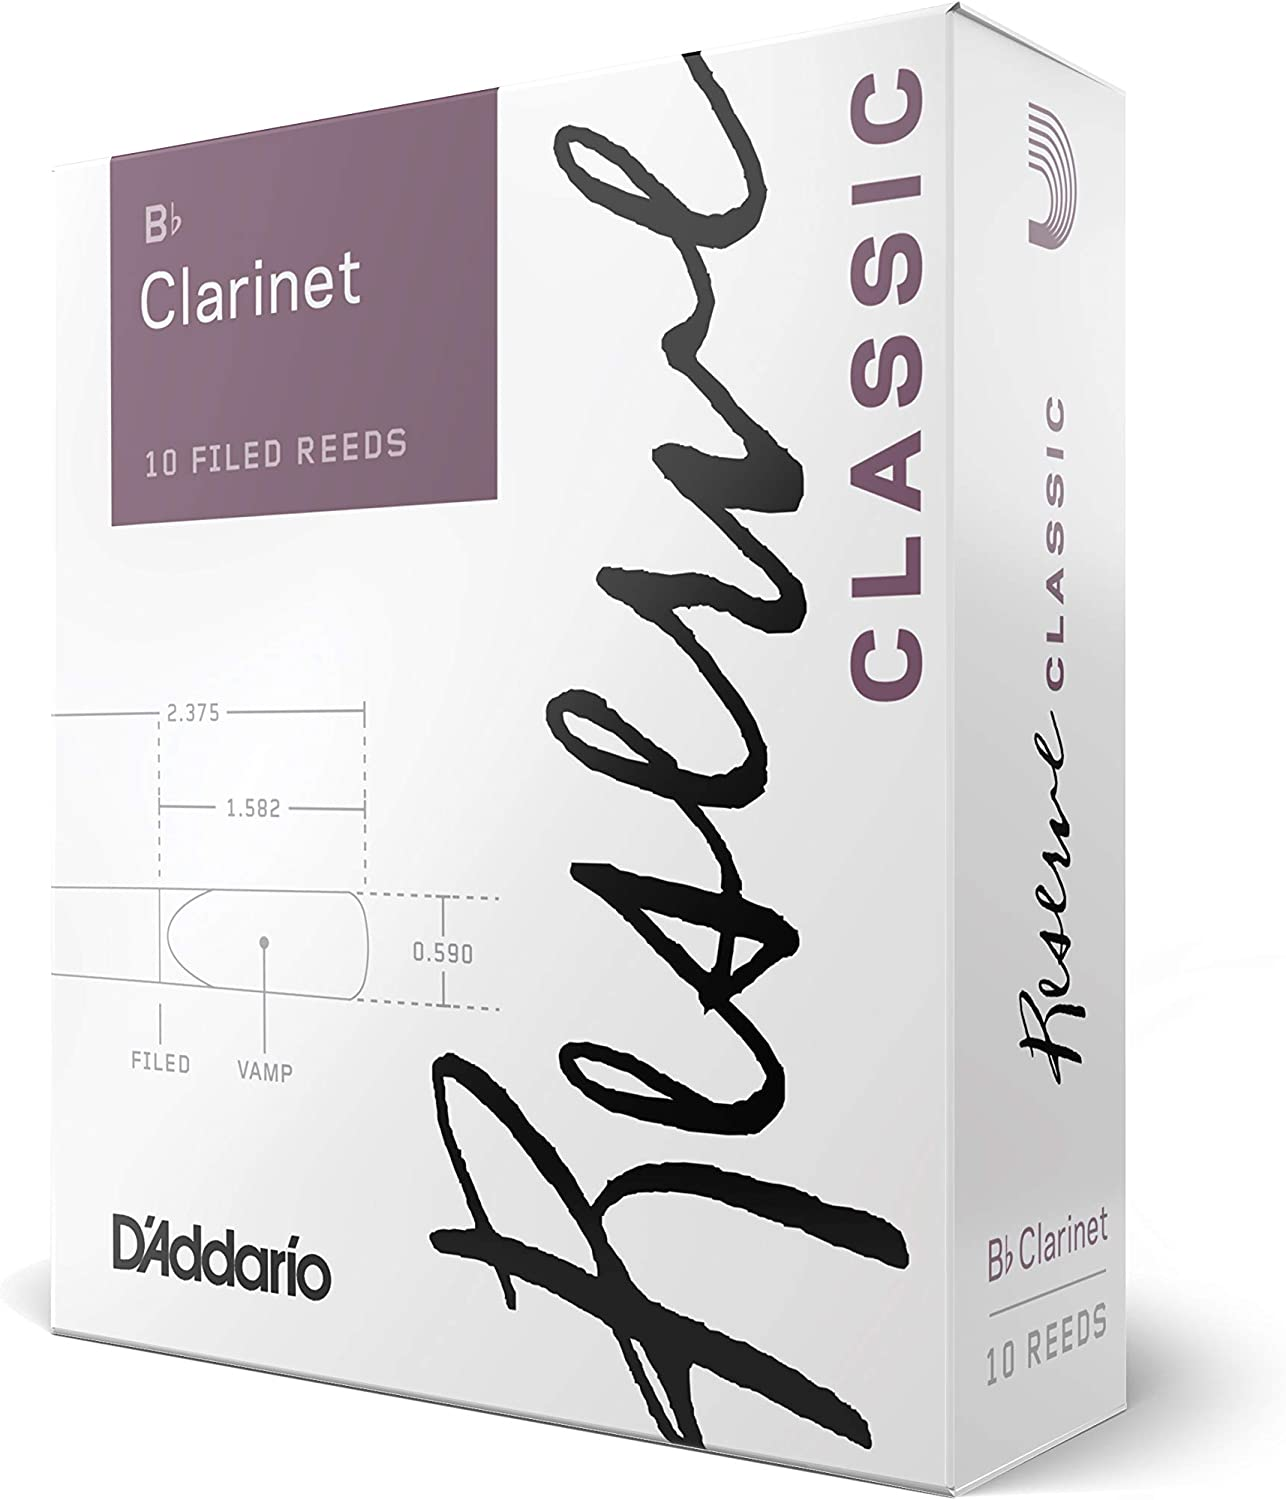 D'Addario Reserve Classic B♭ Clarinet Reeds, Strength 3.5 (10-Pack), Ideal for Advanced Students or Professionals